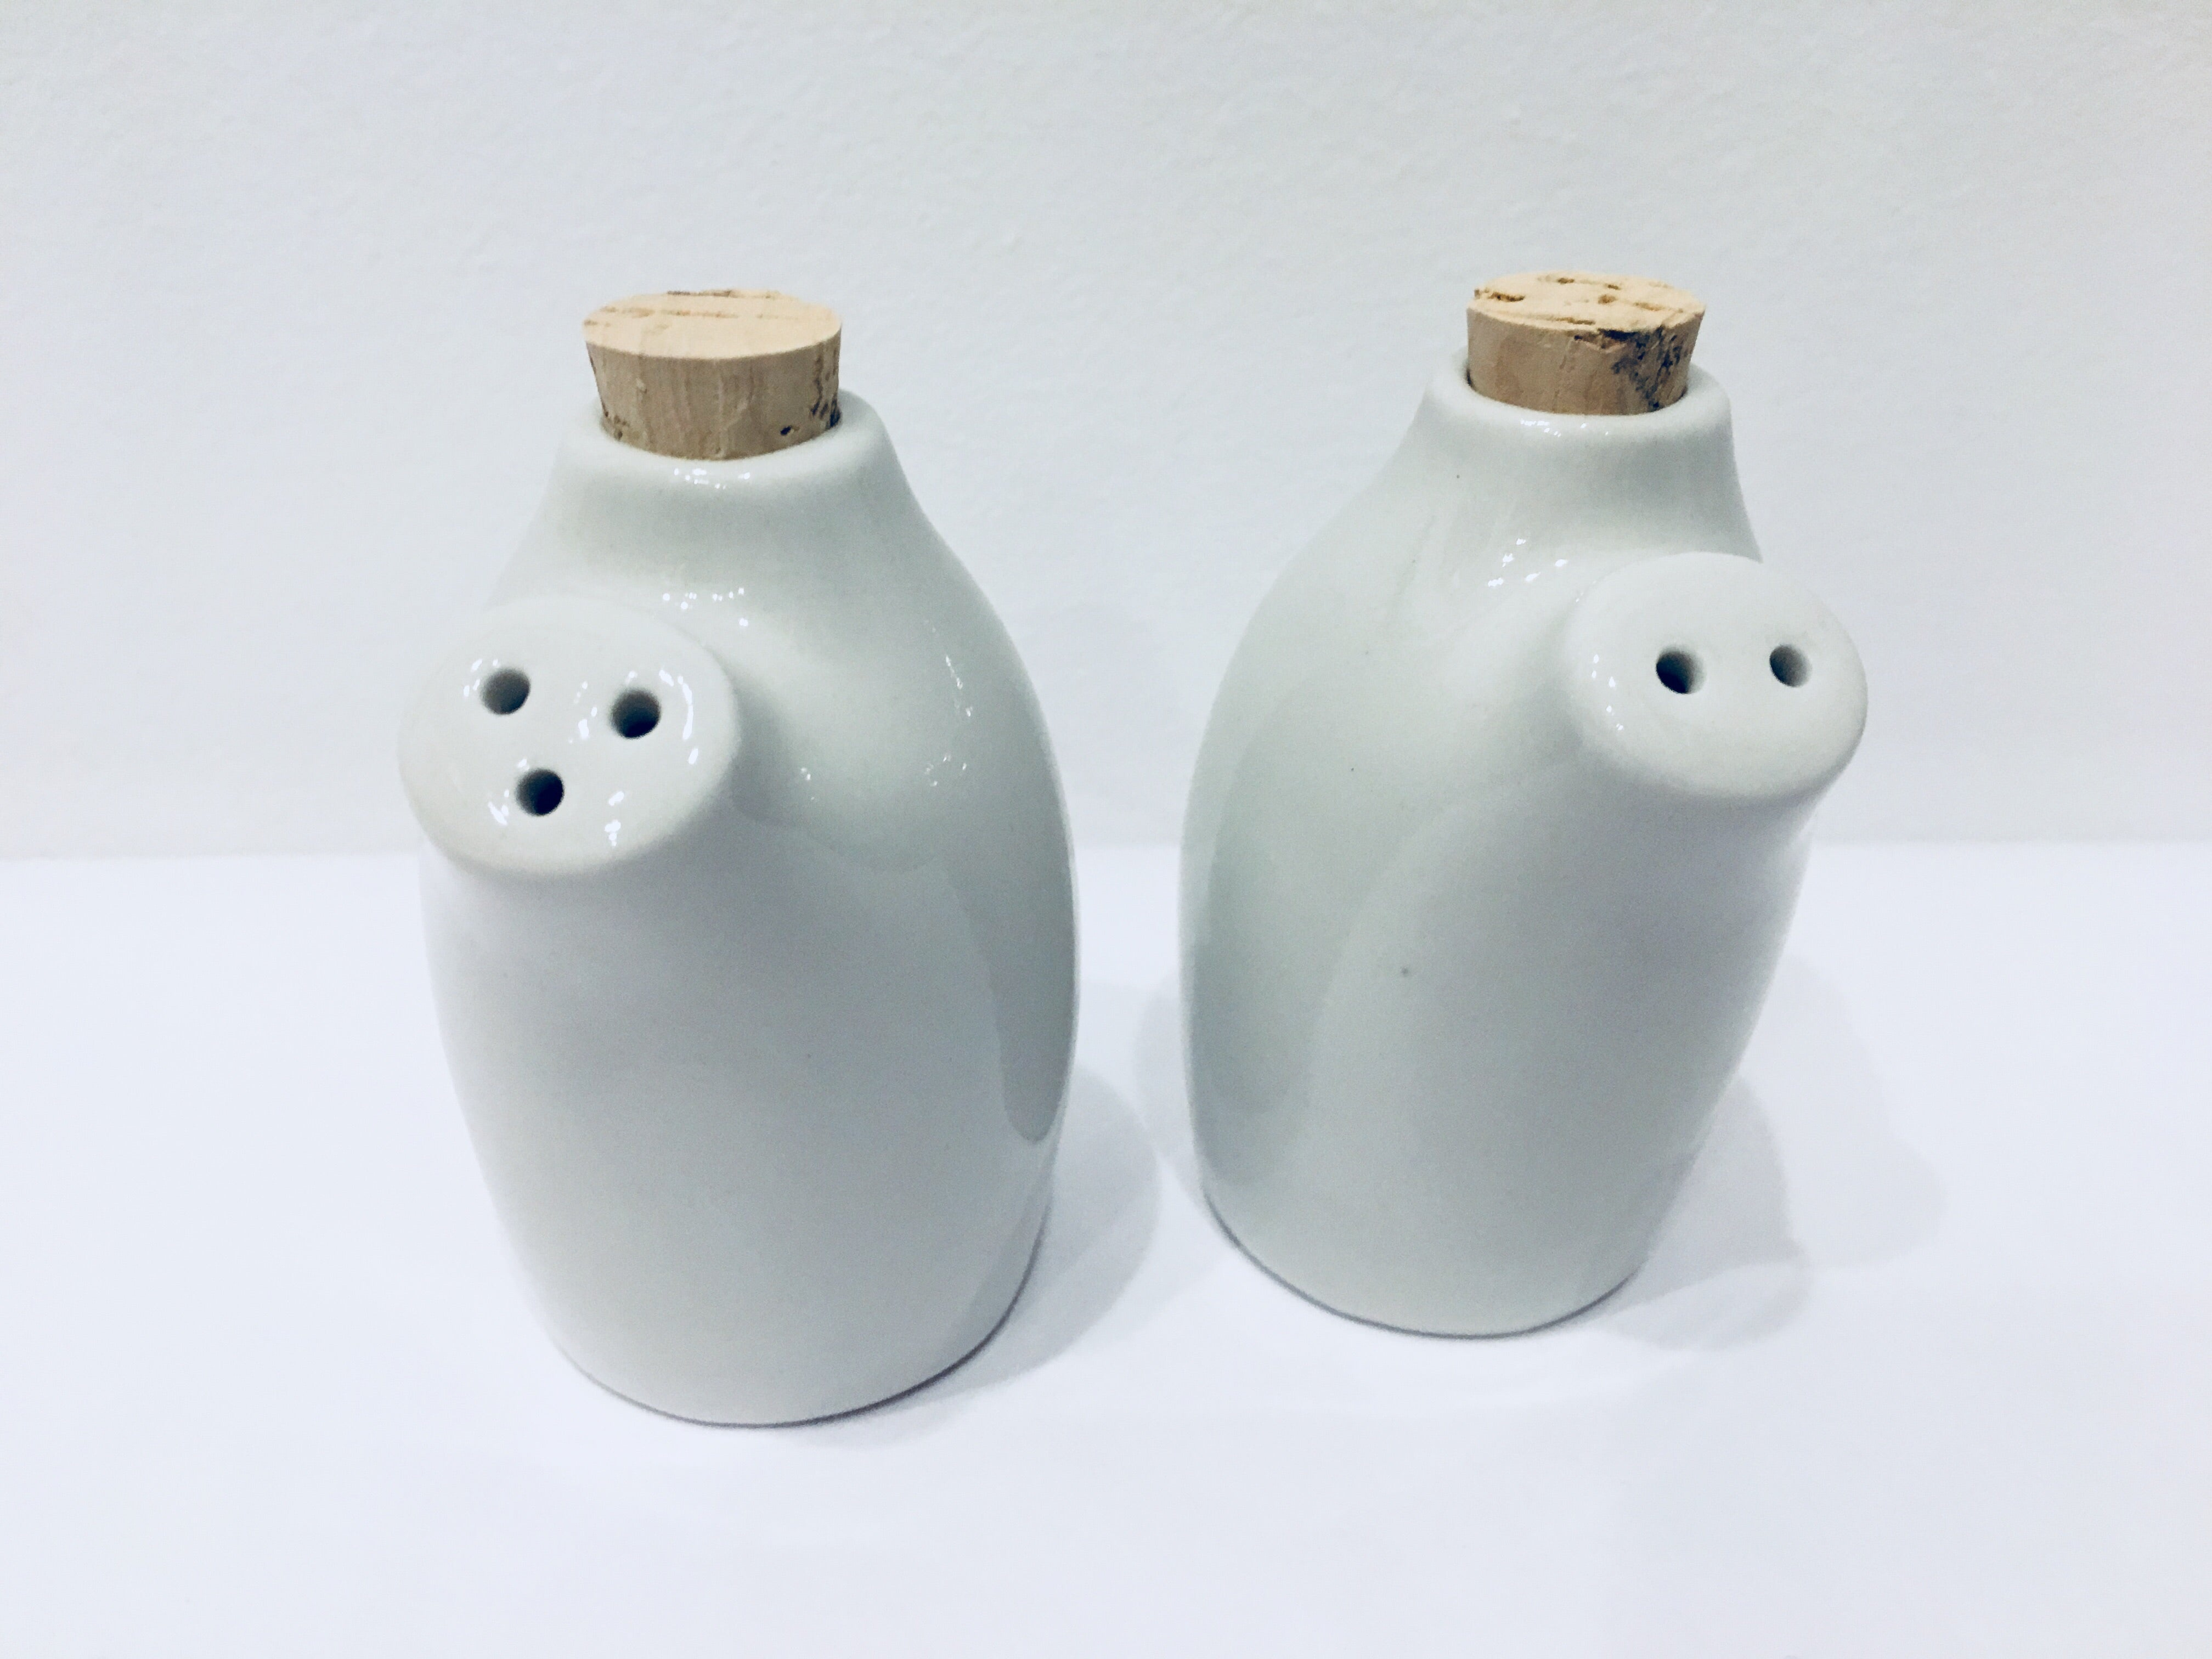 Porcelain salt and pepper shakers